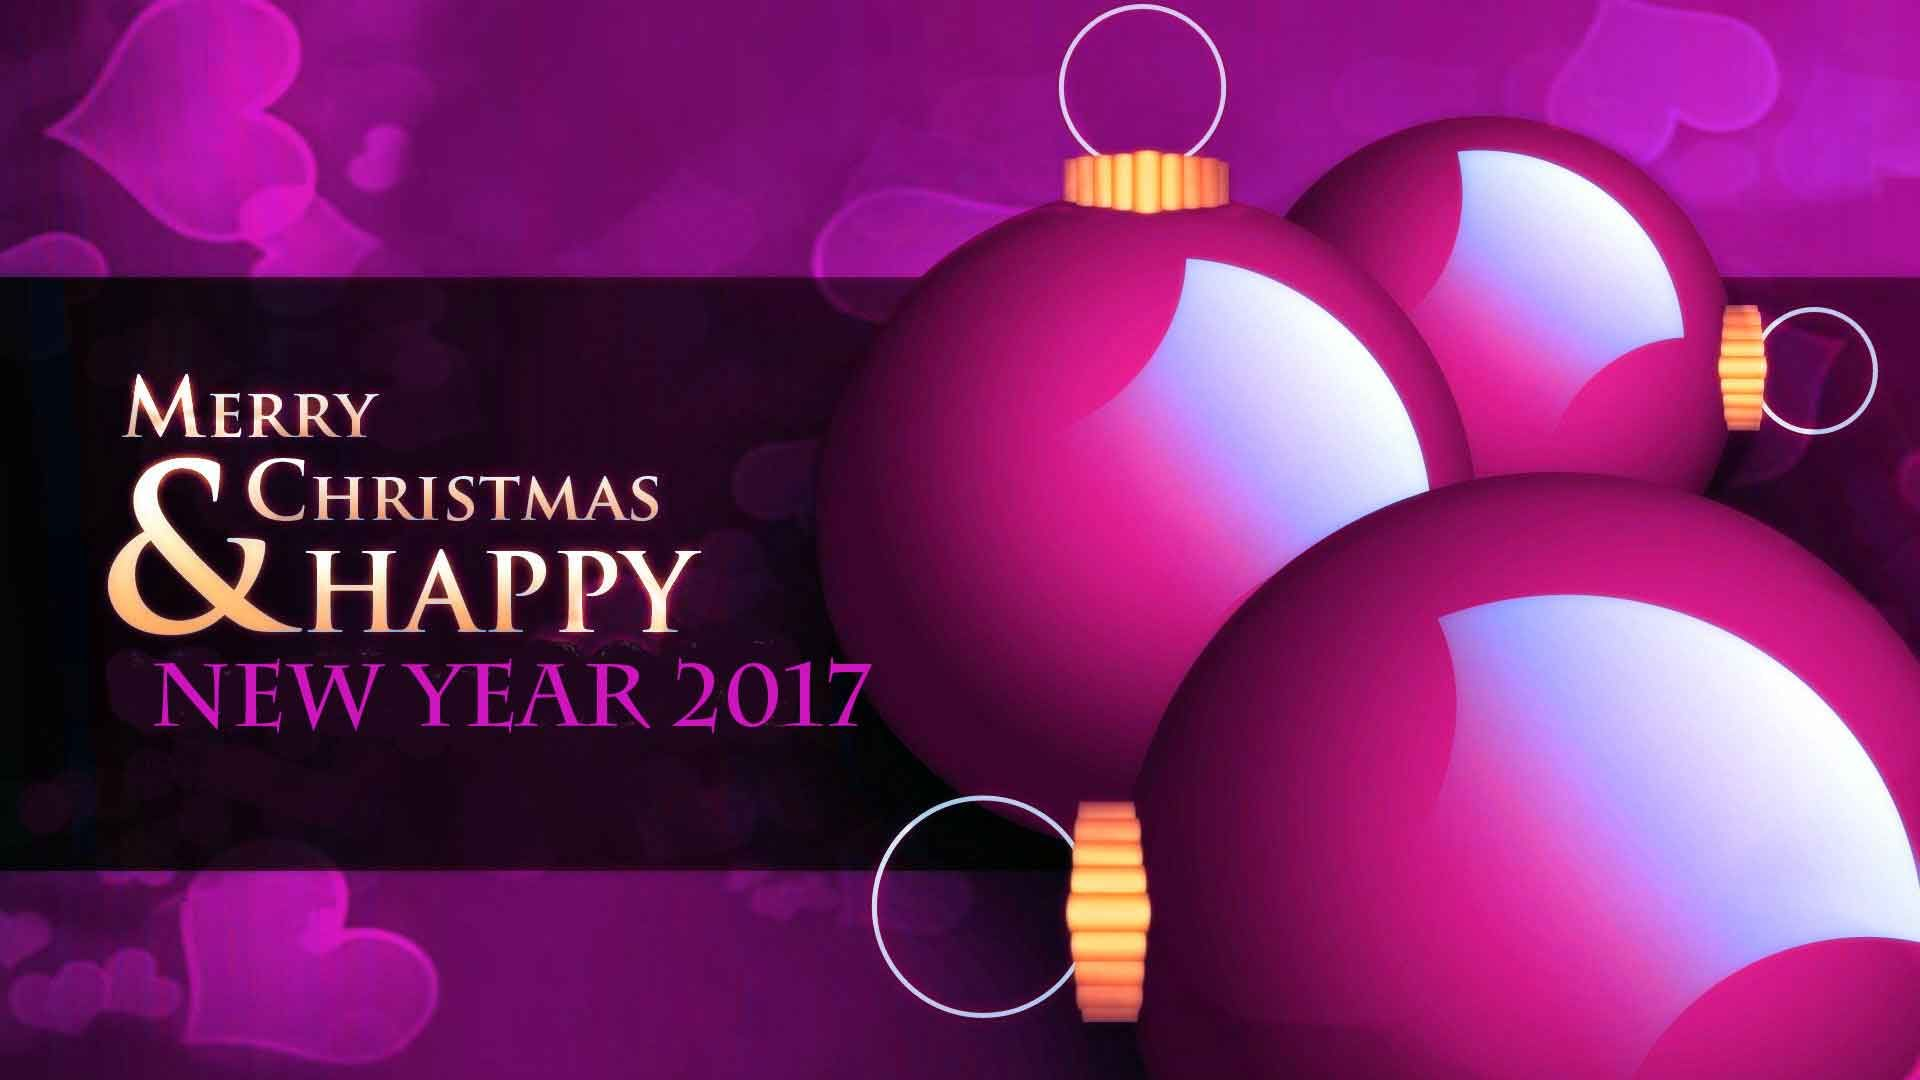 Browse The Latest Collection Of Happy New Year 2017 Messages In